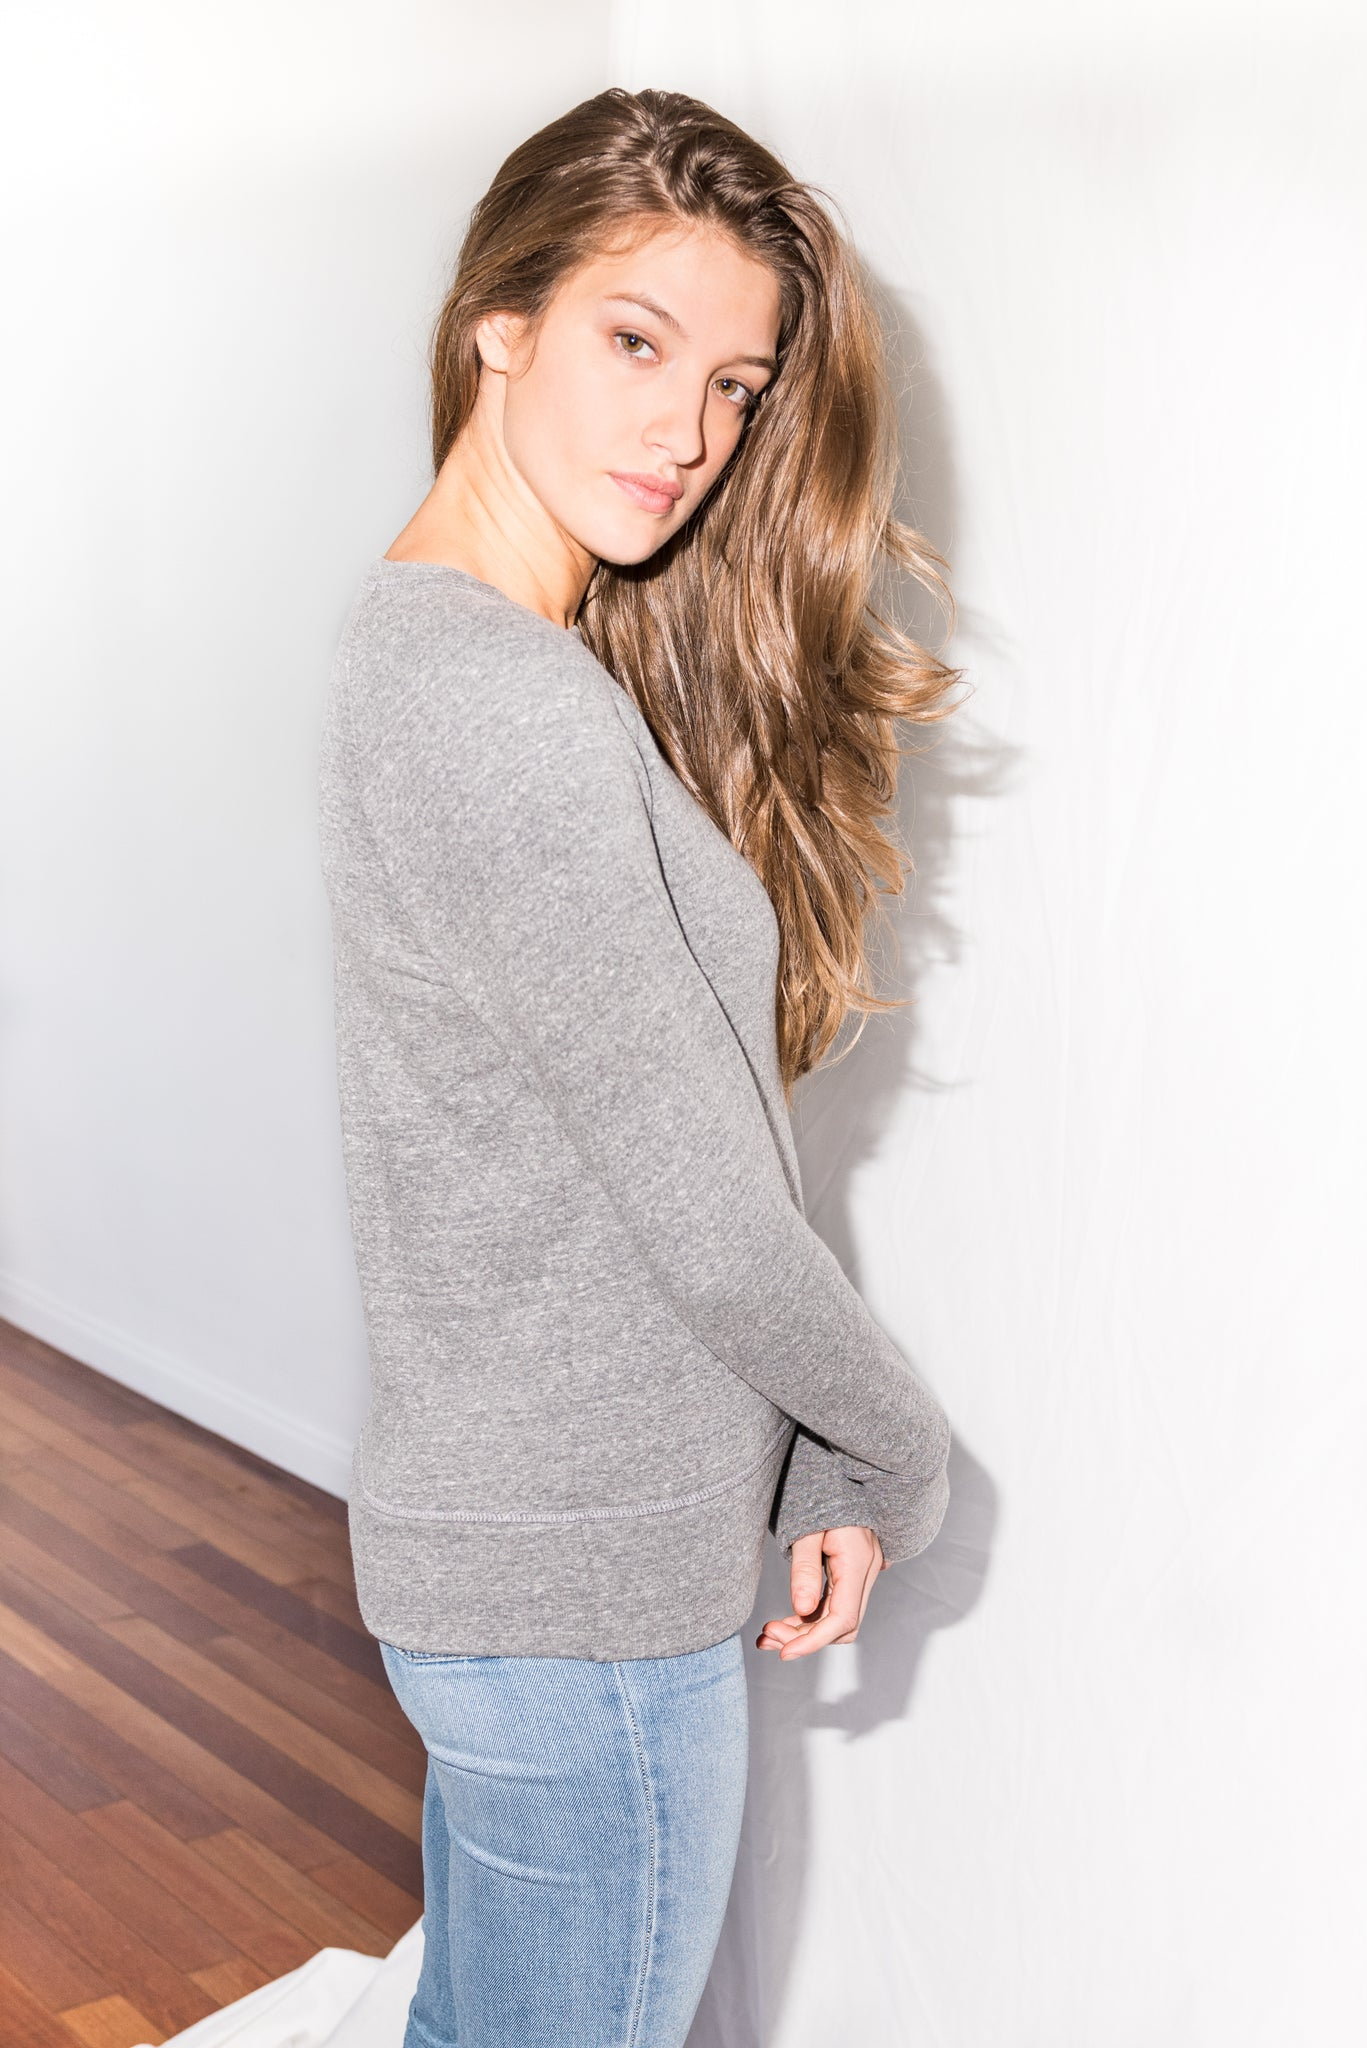 WOMEN'S RELAXED FIT PULLOVER SWEATSHIRT - HEATHER GREY